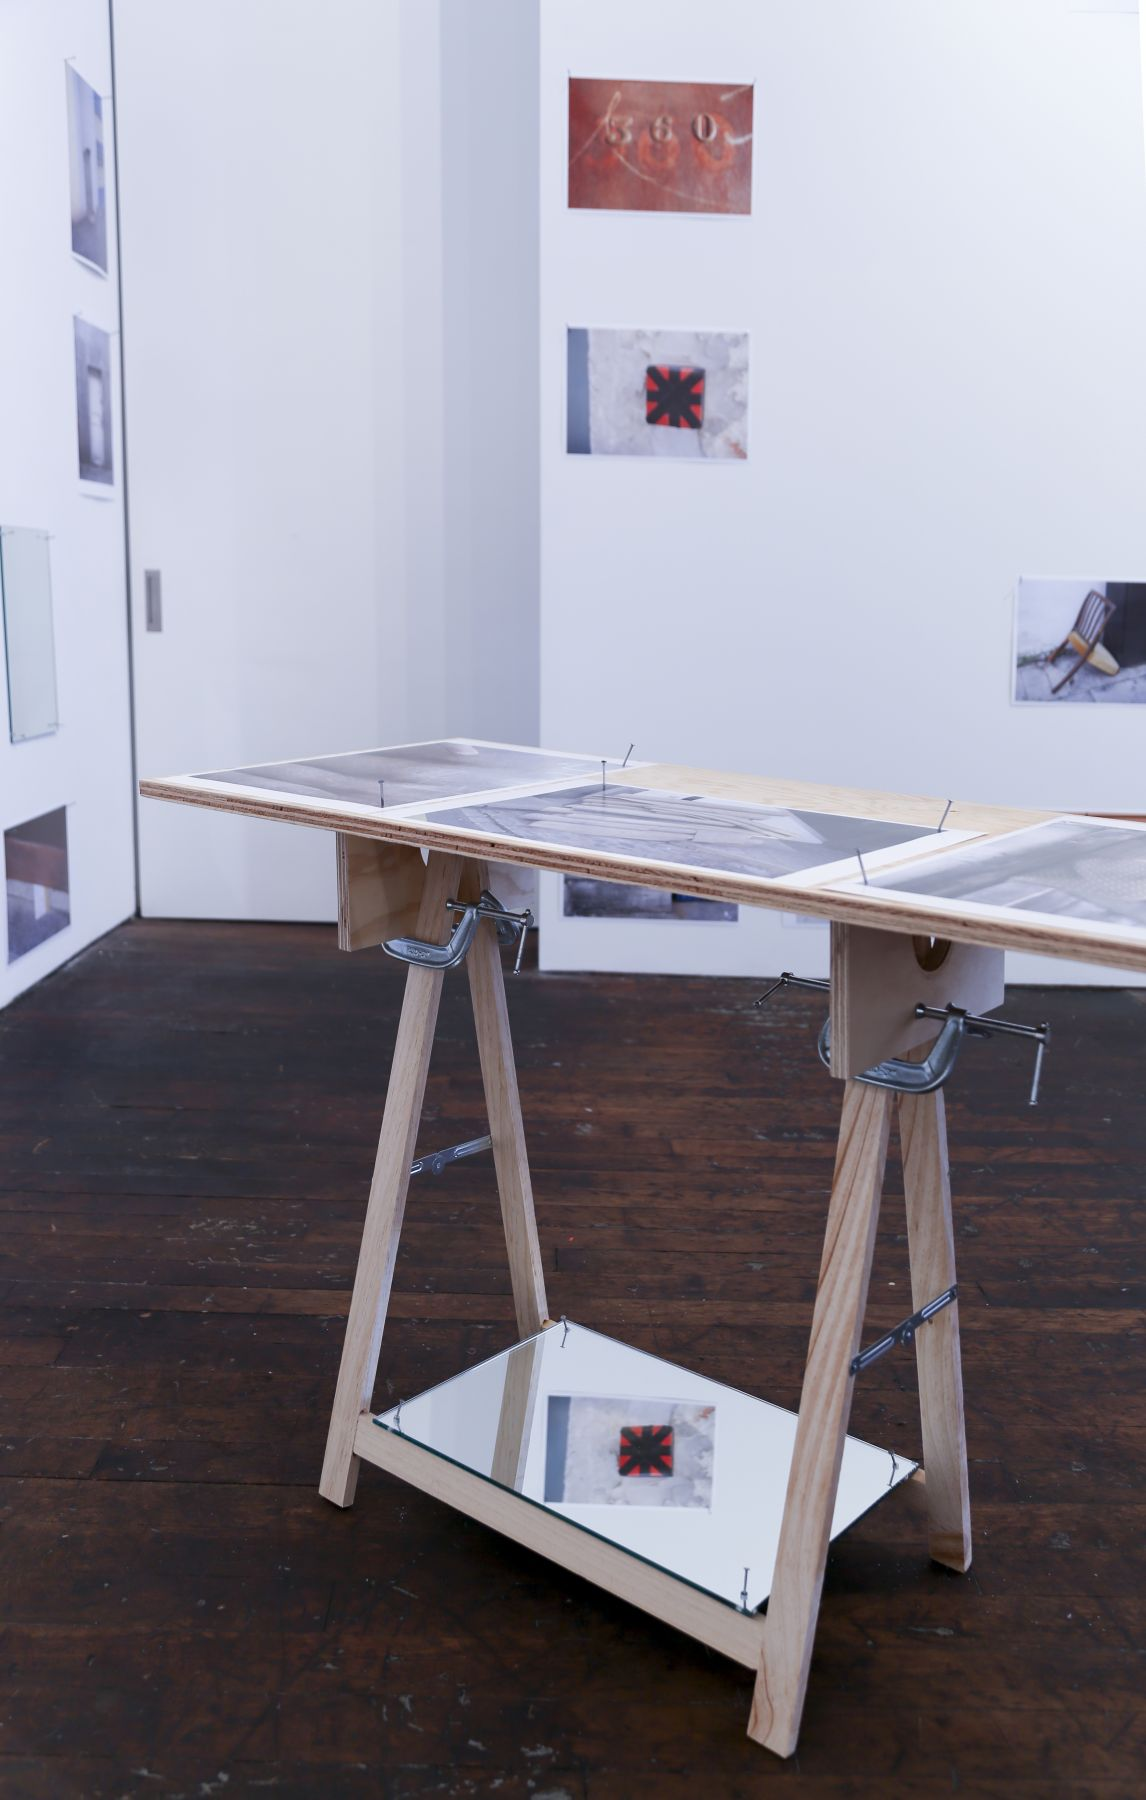 Richard Wentworth: motes to self – installation view 5